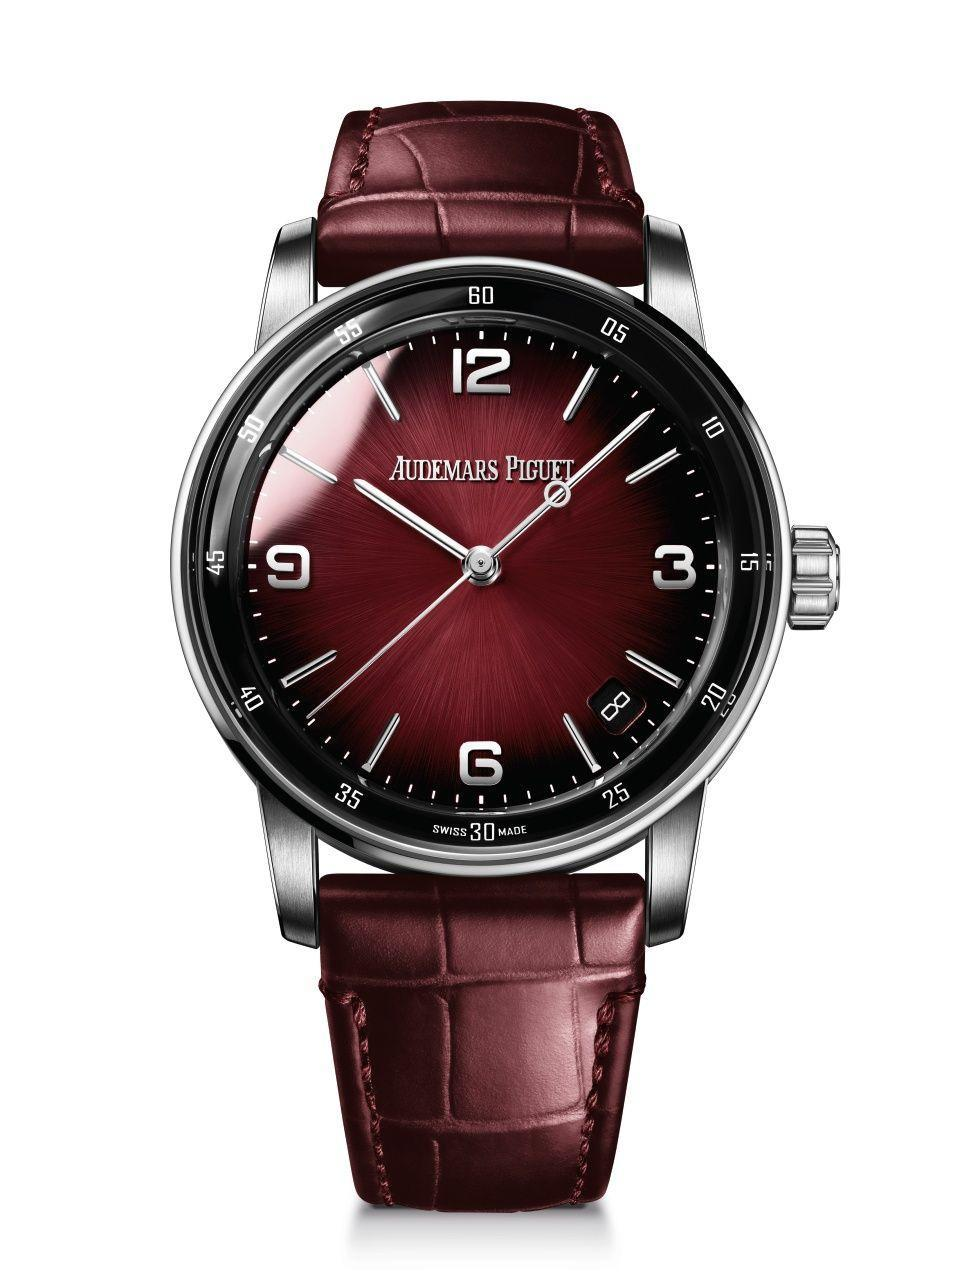 """<p>Code 11:59 (2020 versions)</p><p><a class=""""link rapid-noclick-resp"""" href=""""https://www.audemarspiguet.com/en/watch-collection/code1159byap/#!/welcome"""" rel=""""nofollow noopener"""" target=""""_blank"""" data-ylk=""""slk:SHOP"""">SHOP</a></p><p>Described by Audemars Piguet as """"the most important launch since the Royal Oak in 1972"""", the tongue-tying Code 11.59 (as in, """"one minute to midnight"""") had a lot to live up to on its 2019 launch. Using genuinely new case architecture and a crystal that curved on two separate axis, you could see why AP hailed it as radical a design as the Royal Oak's iconic octagonal case and integrated metal bracelet. Code 11.59 didn't convince everyone, and a new-for-2020 palate of colours is a welcome update. The focus is on sunburst lacquered dials in rich colours including blue, burgundy, purple and light and dark grey. All come on hand-stitched alligator straps matching each dials colour and, like the original run of 11.59s, are intended for both men and women.</p><p>£41,300; <a href=""""https://www.audemarspiguet.com/en/watch-collection/code1159byap/#!/welcome"""" rel=""""nofollow noopener"""" target=""""_blank"""" data-ylk=""""slk:audemarspiguet.com"""" class=""""link rapid-noclick-resp"""">audemarspiguet.com</a><br></p>"""